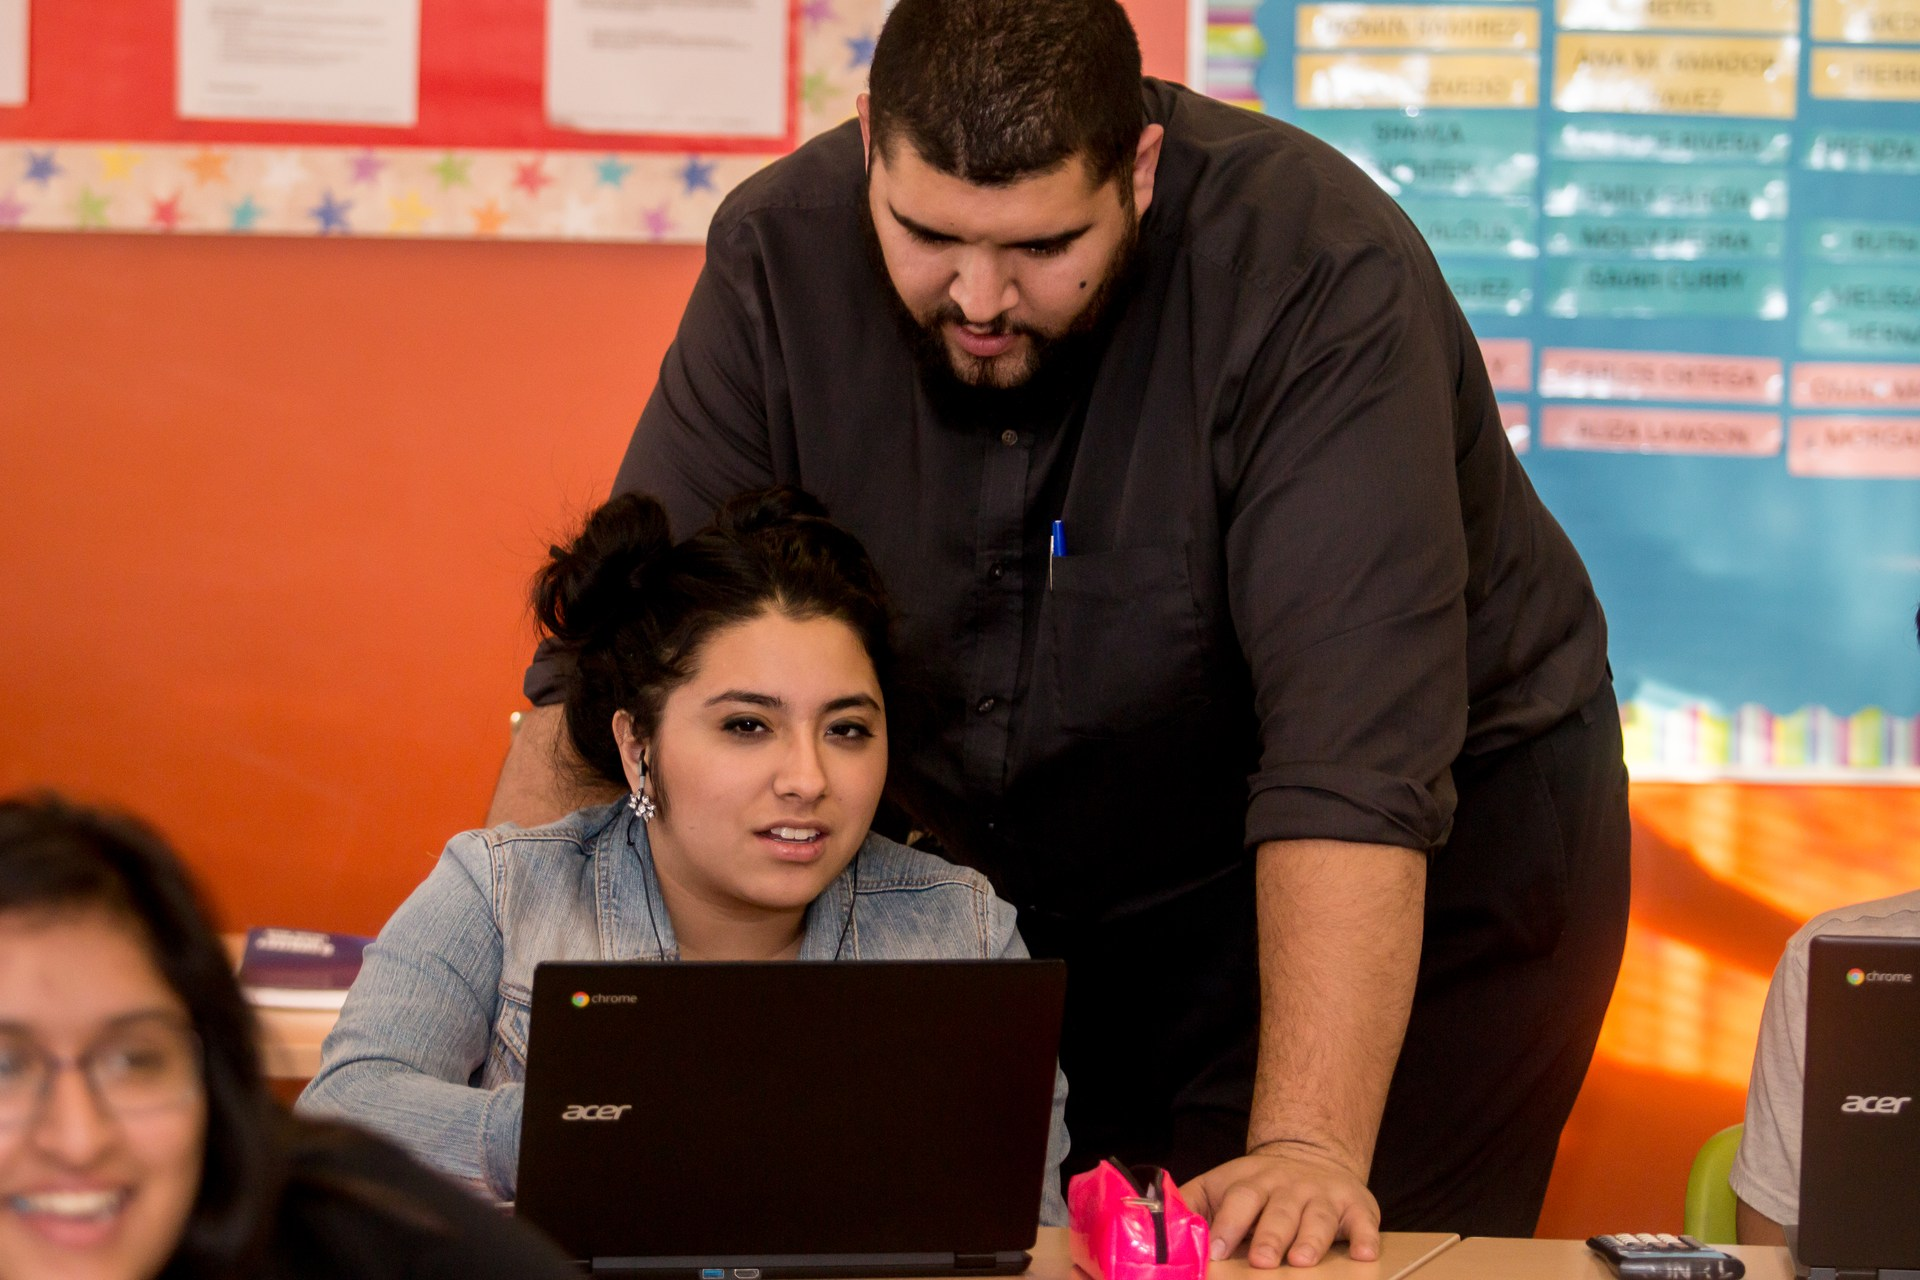 Student and teacher working on computer